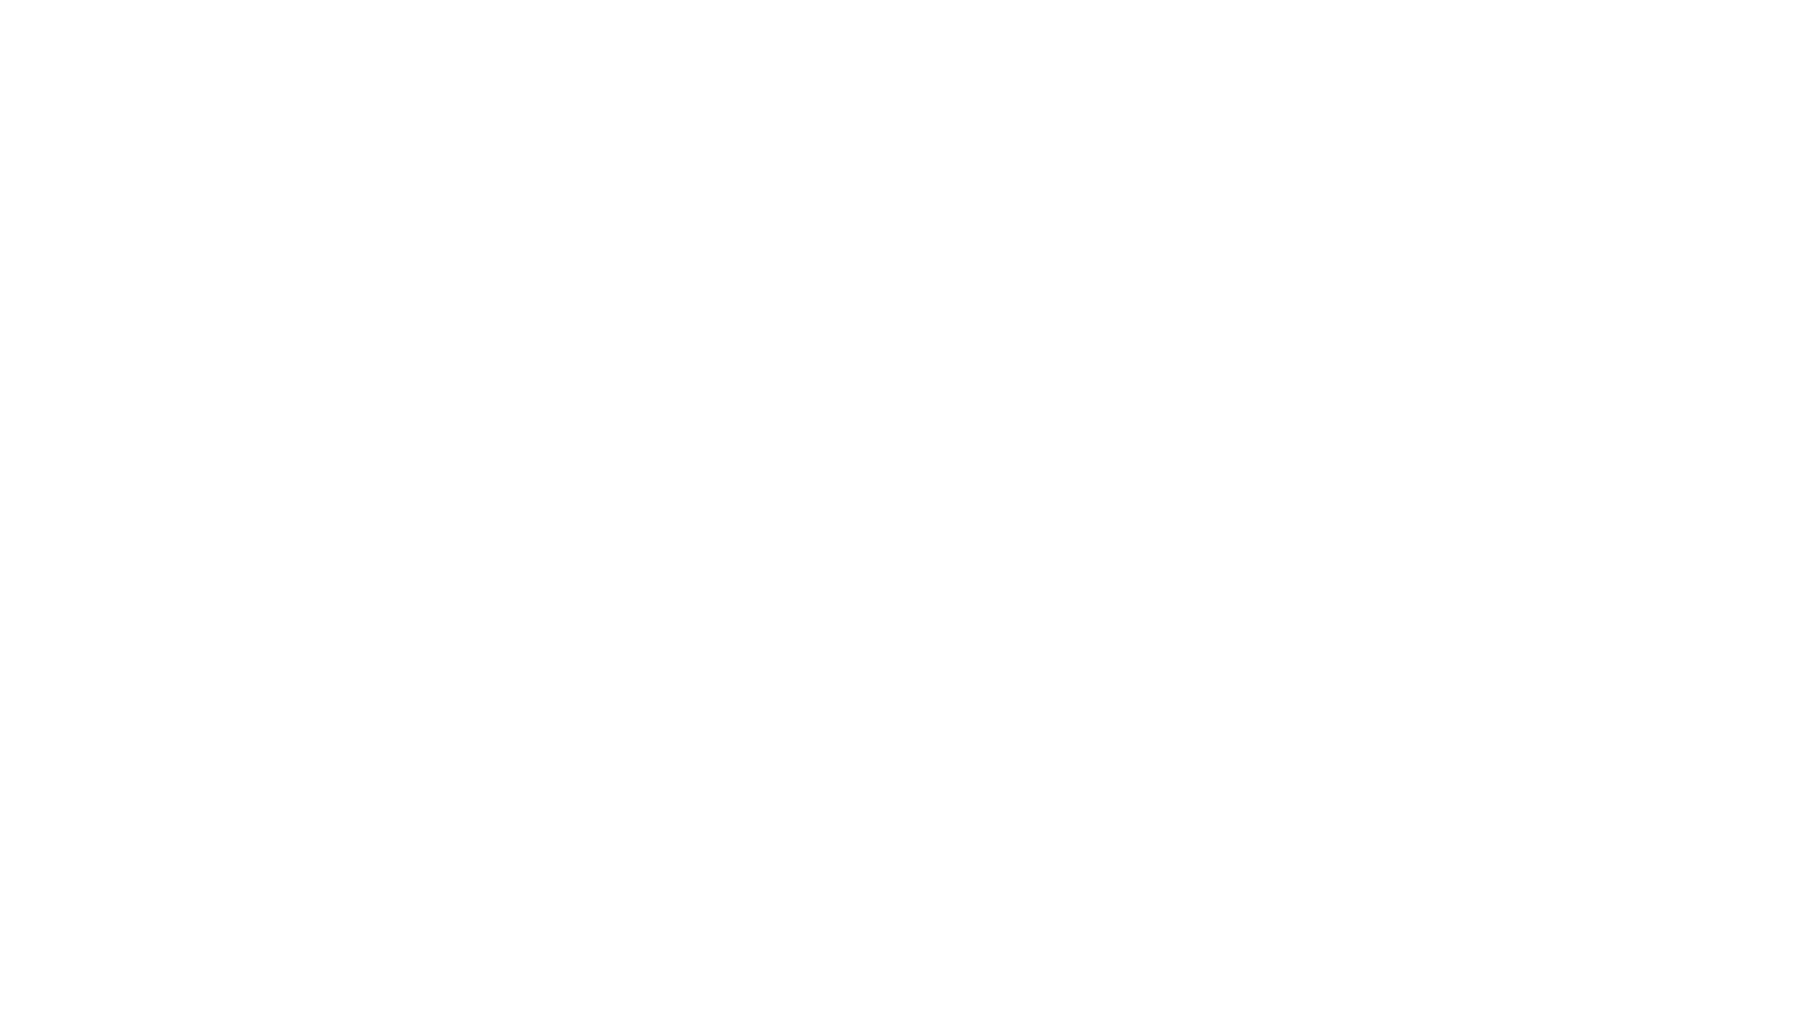 5G will transform the delivery of public services